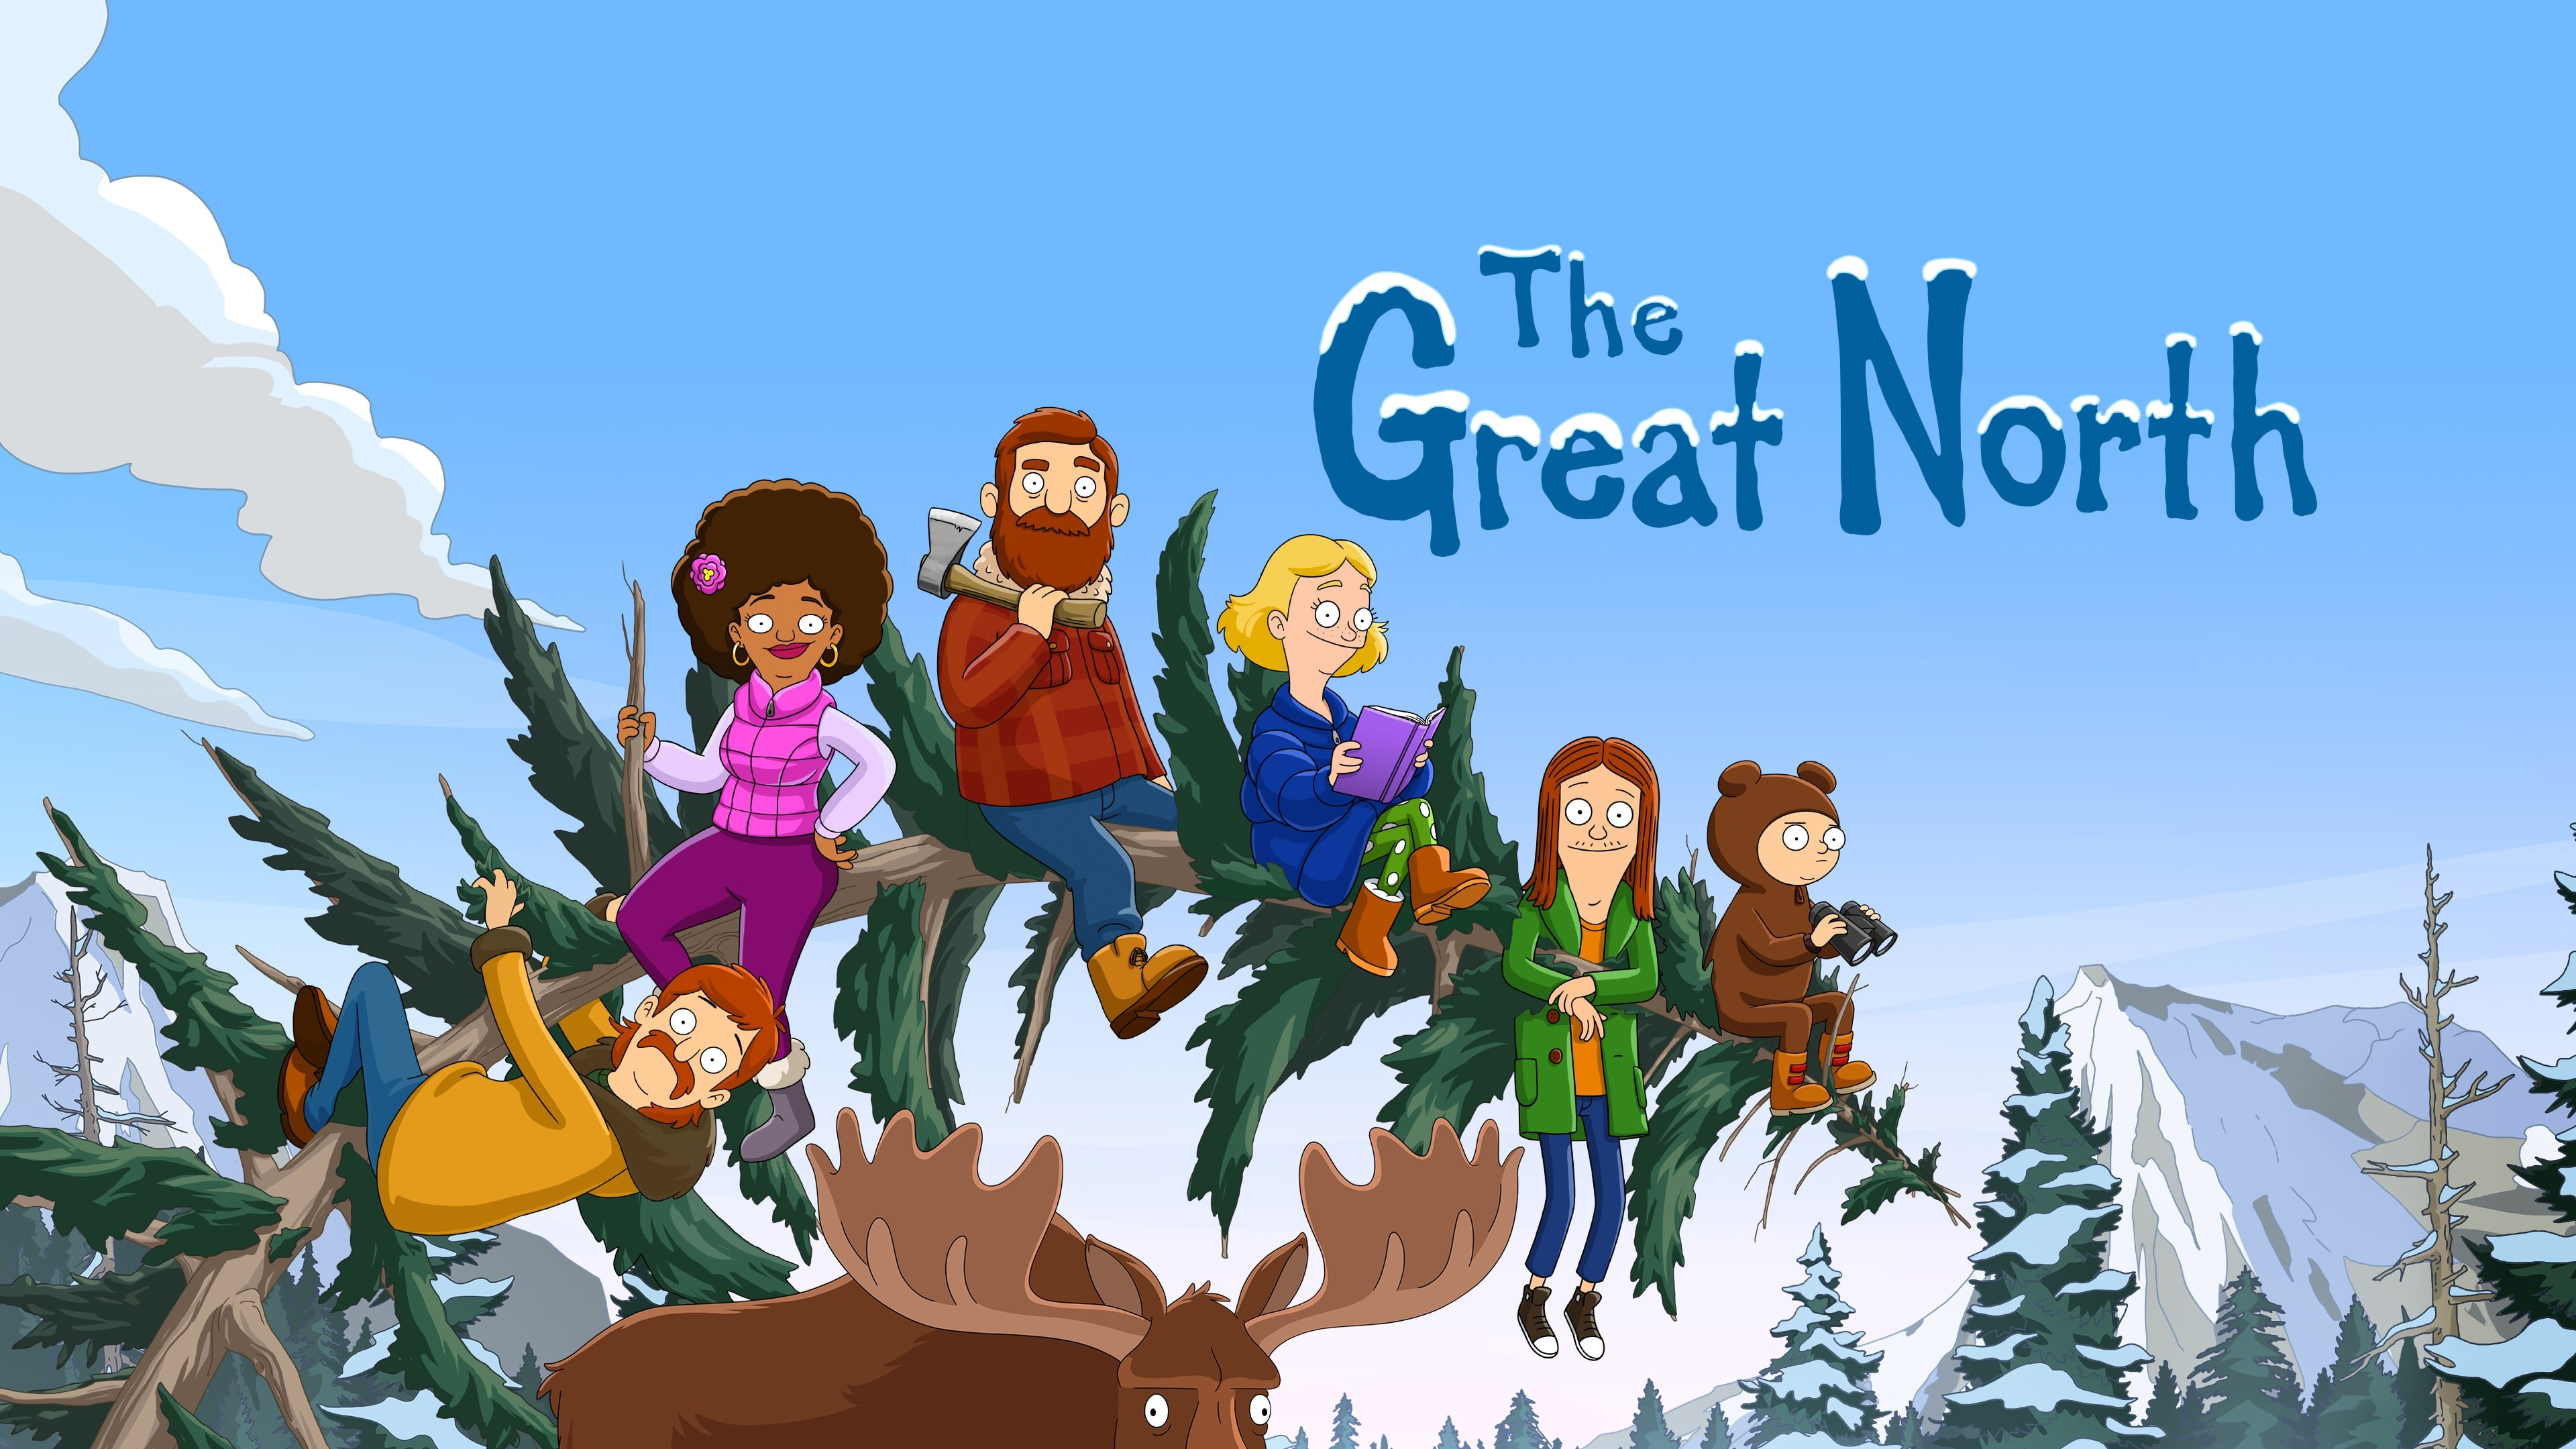 The Great North